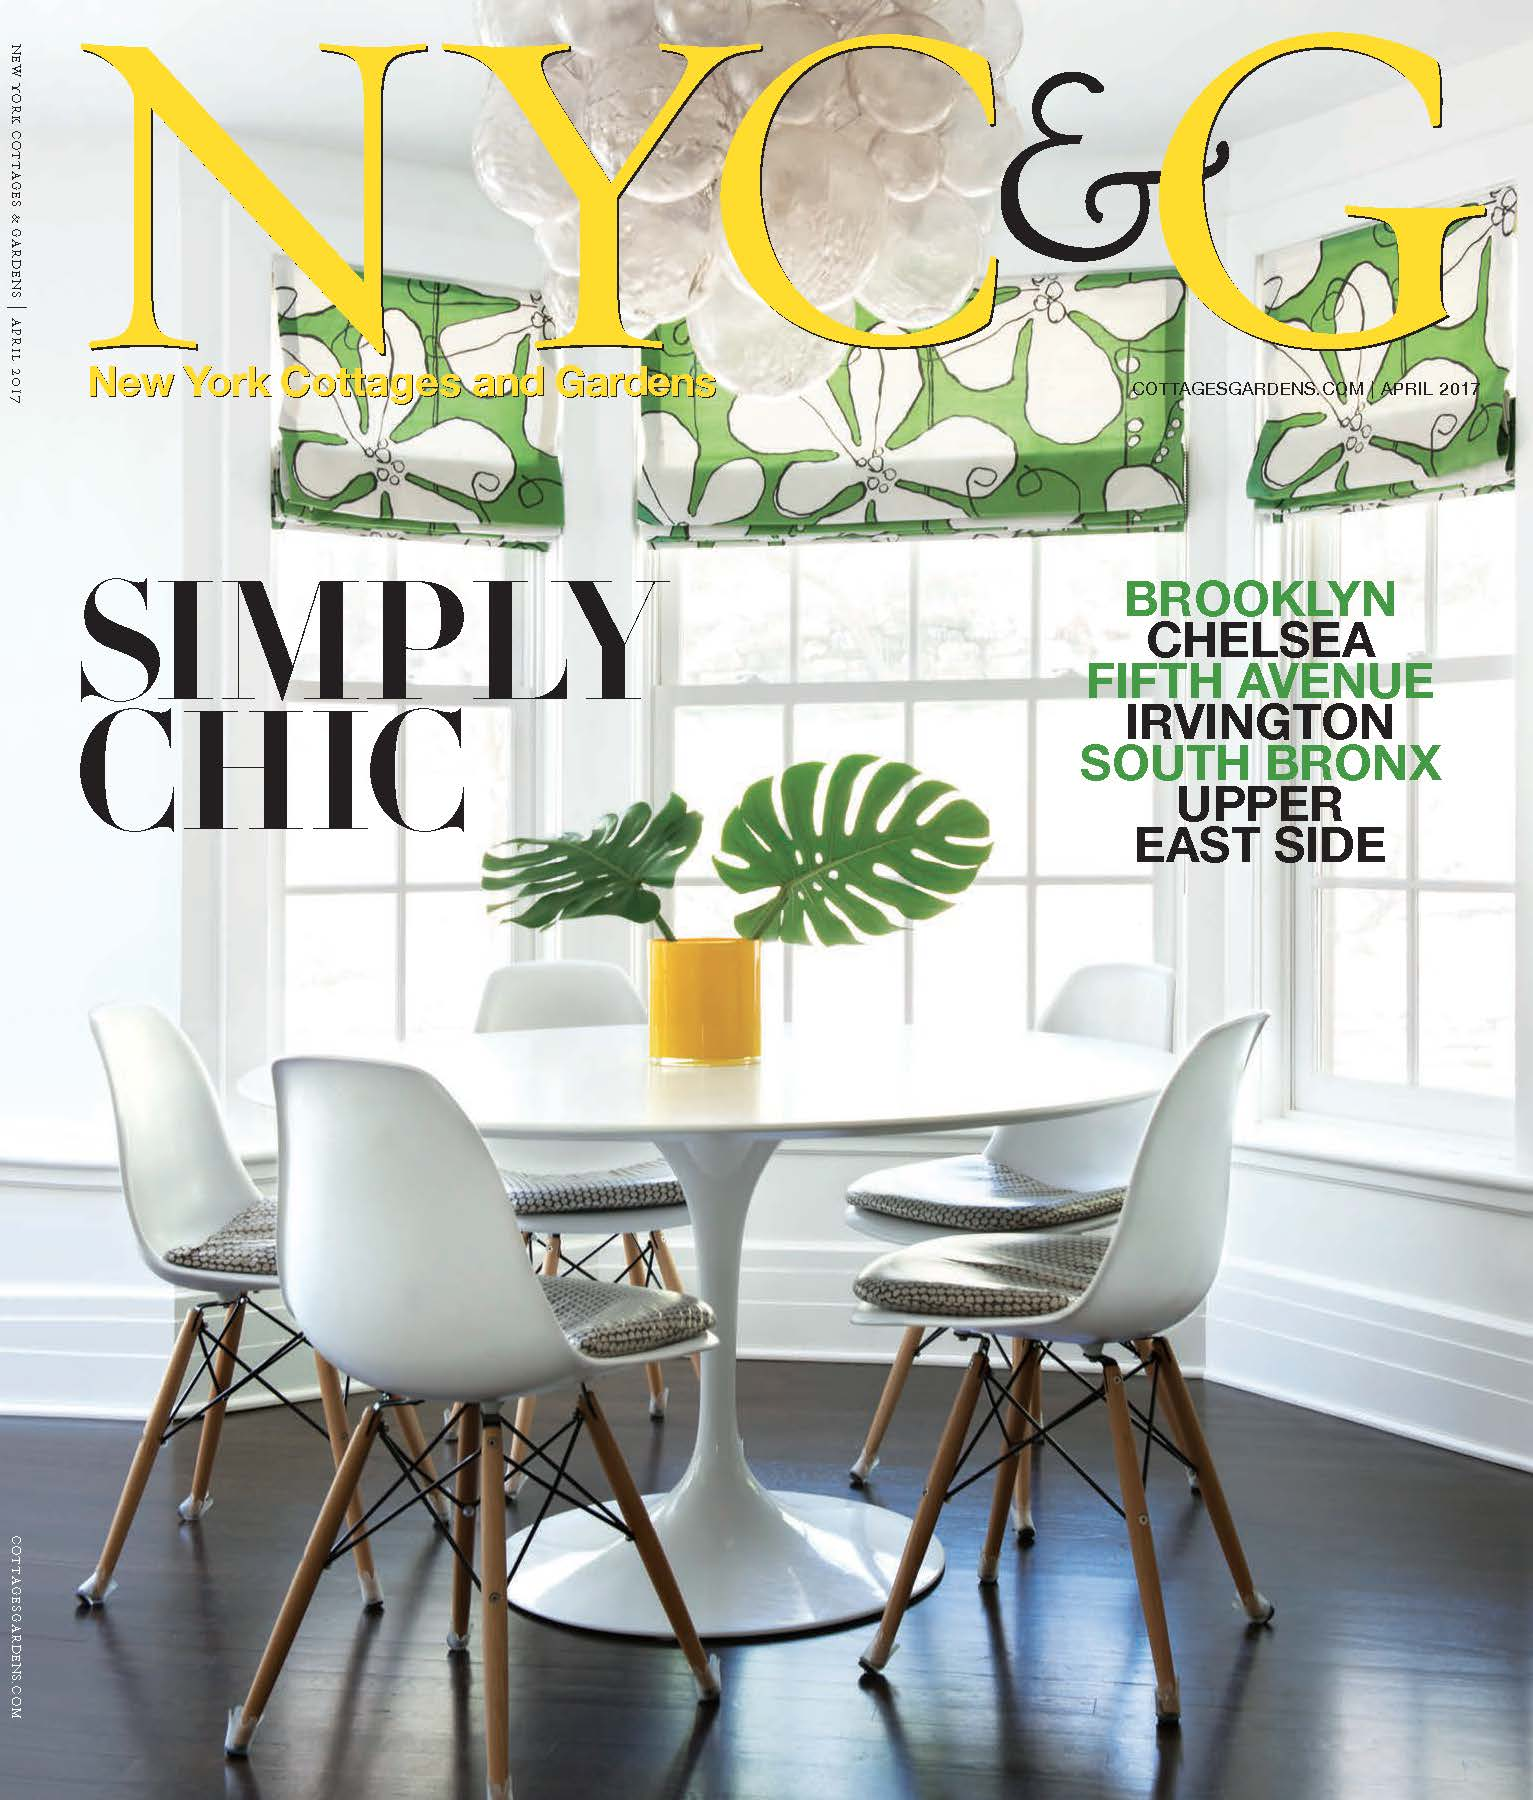 COVER - NYC&G - April 2017